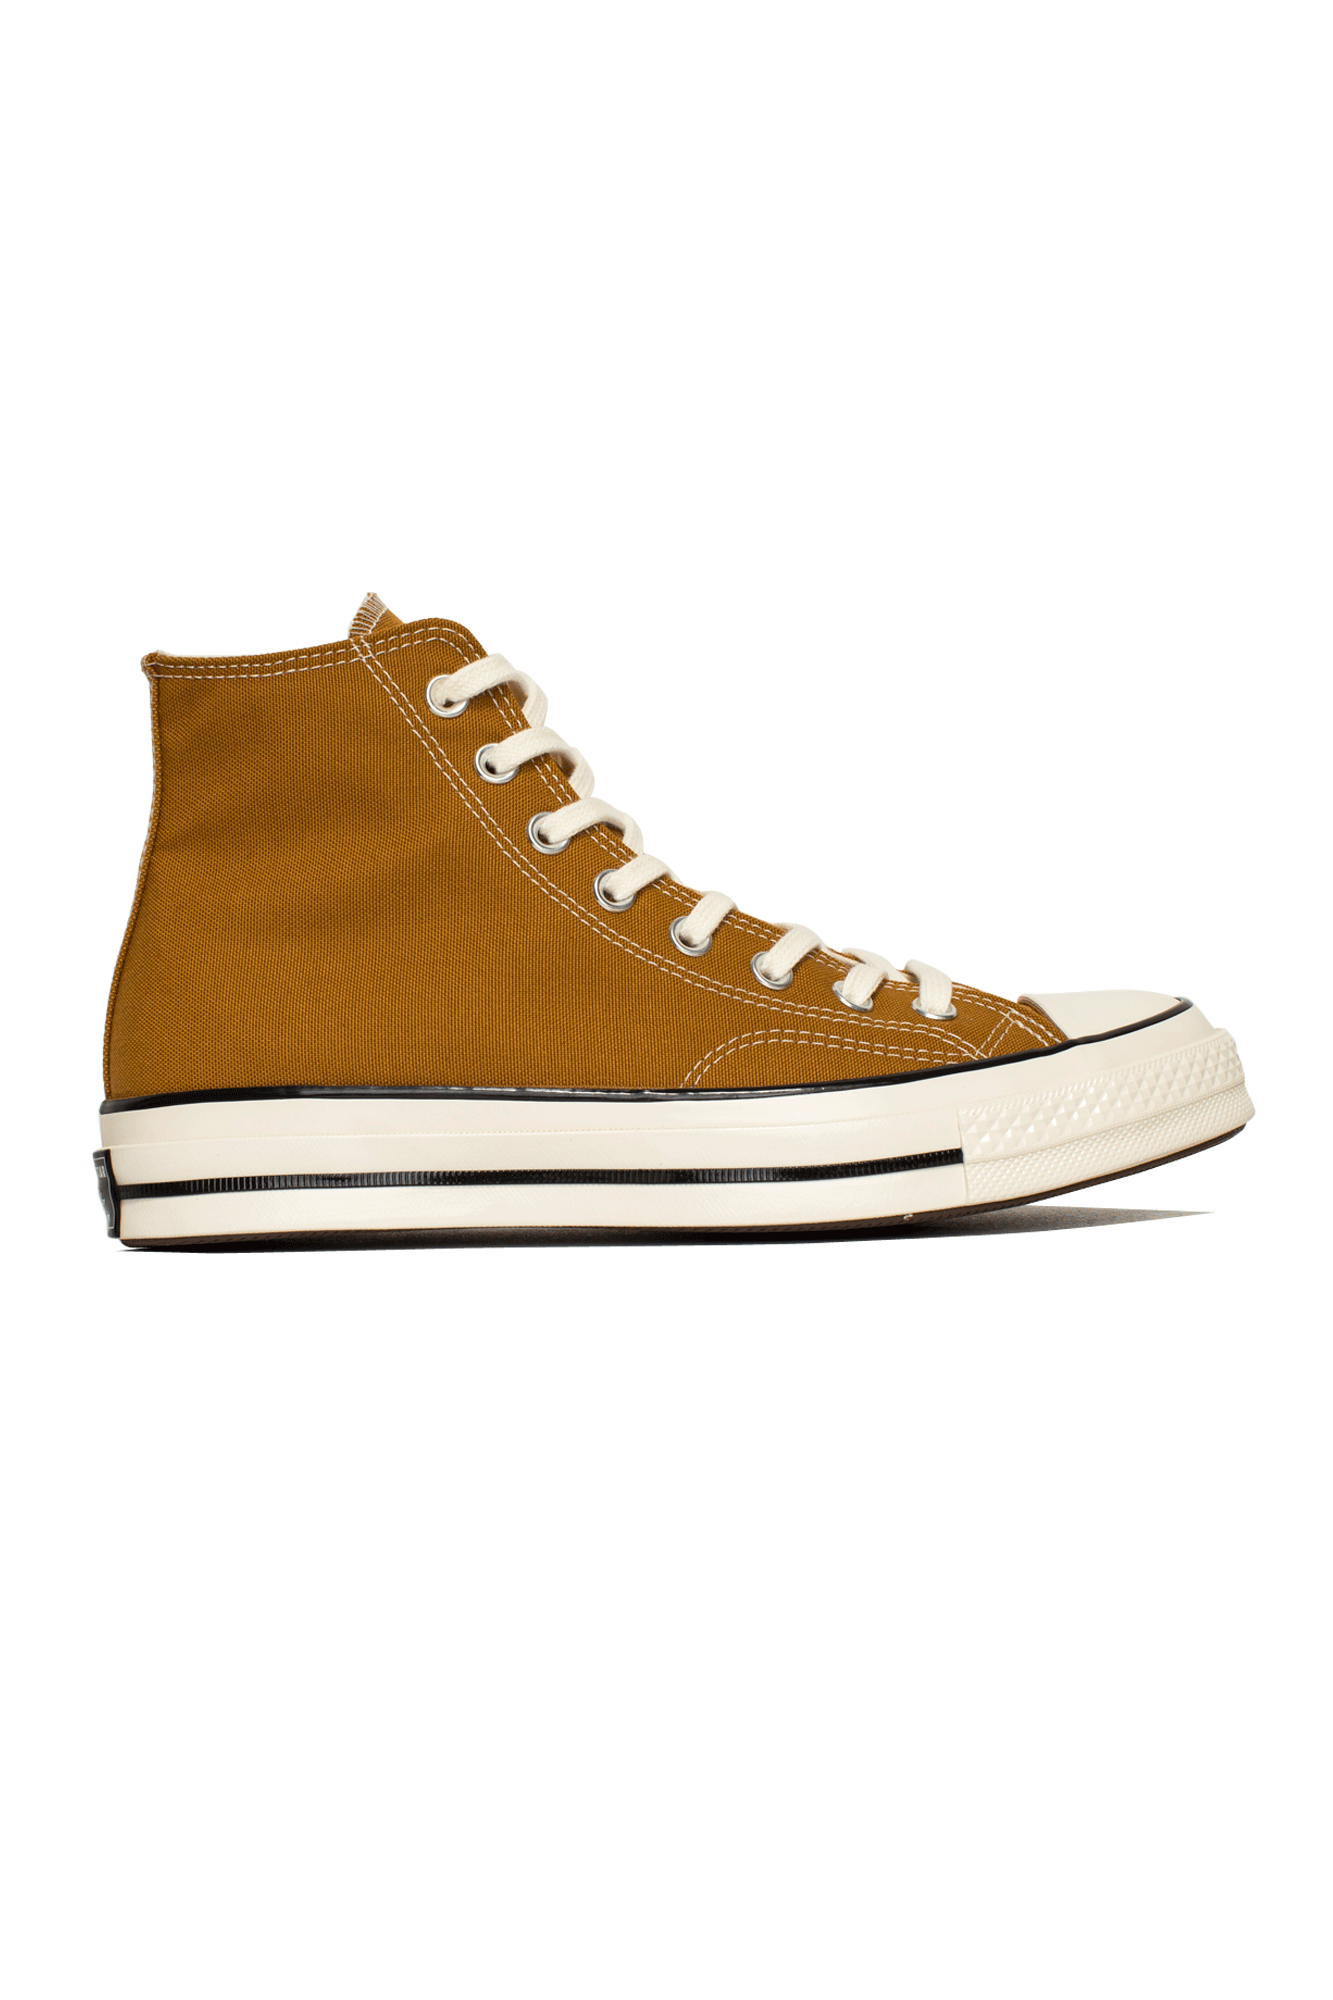 Chuck 70 Recycled Canvas Orange